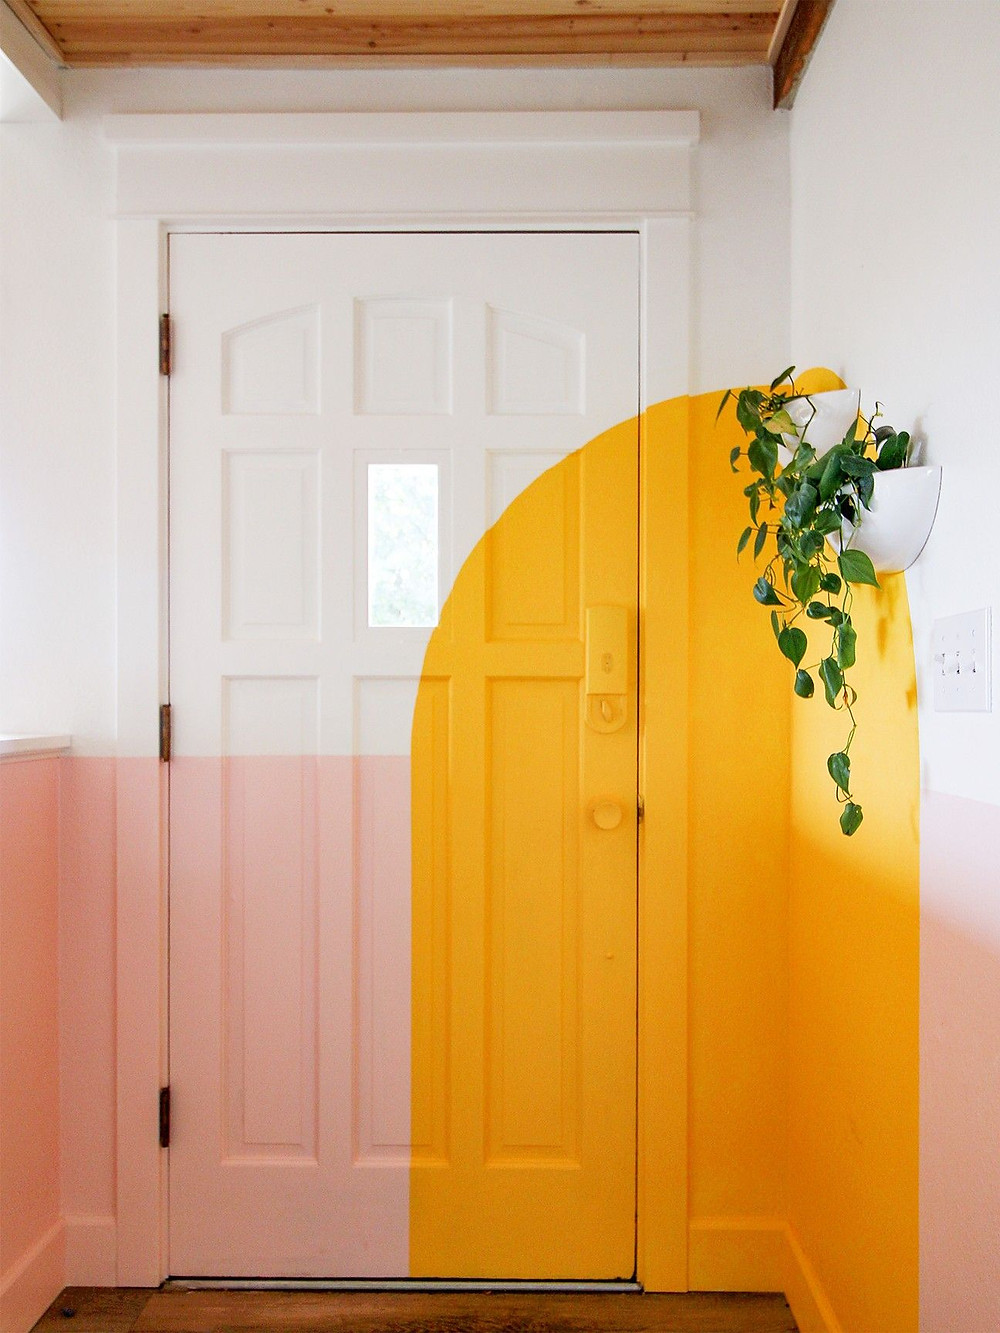 Creative ways to use paint around your home | Painted arch effect on a door frame and adjoining wall in yellow colour | Seasons in Colour Interiors Blog